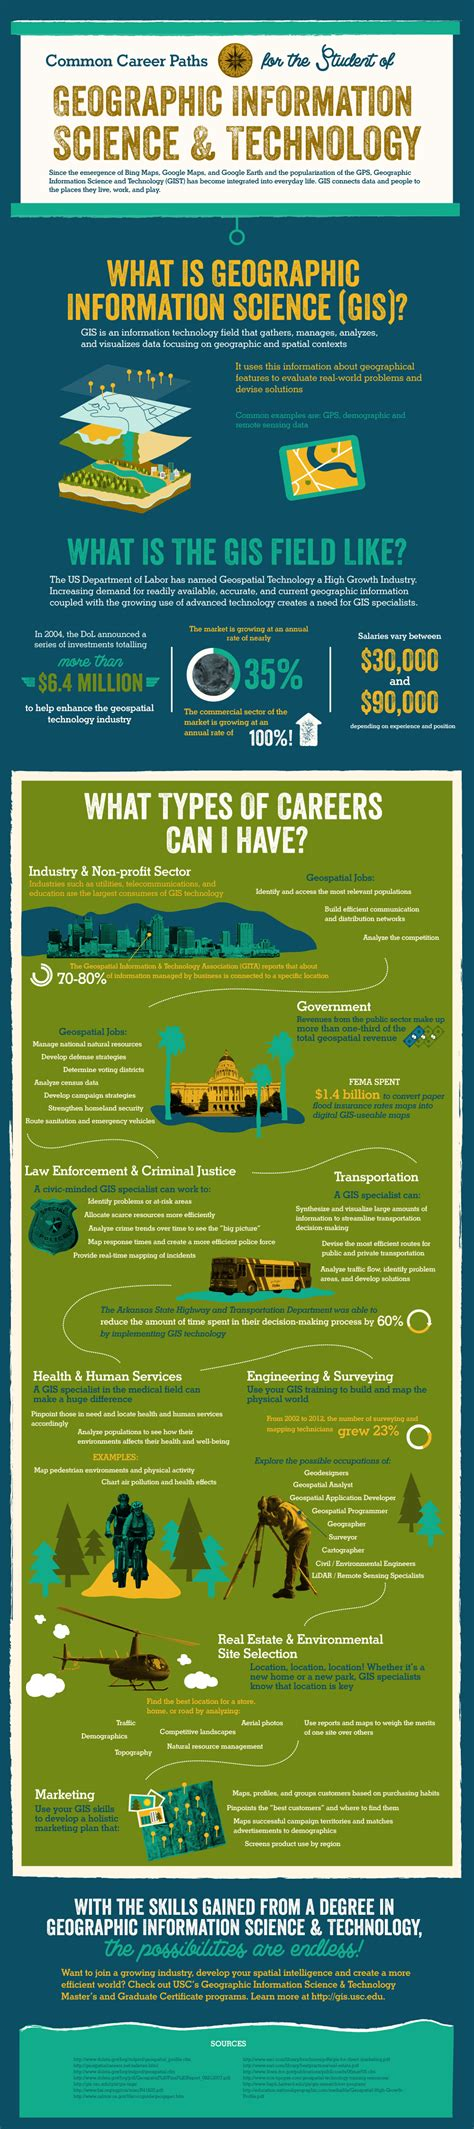 11703 career path infographic career tips common career paths for the student of gis